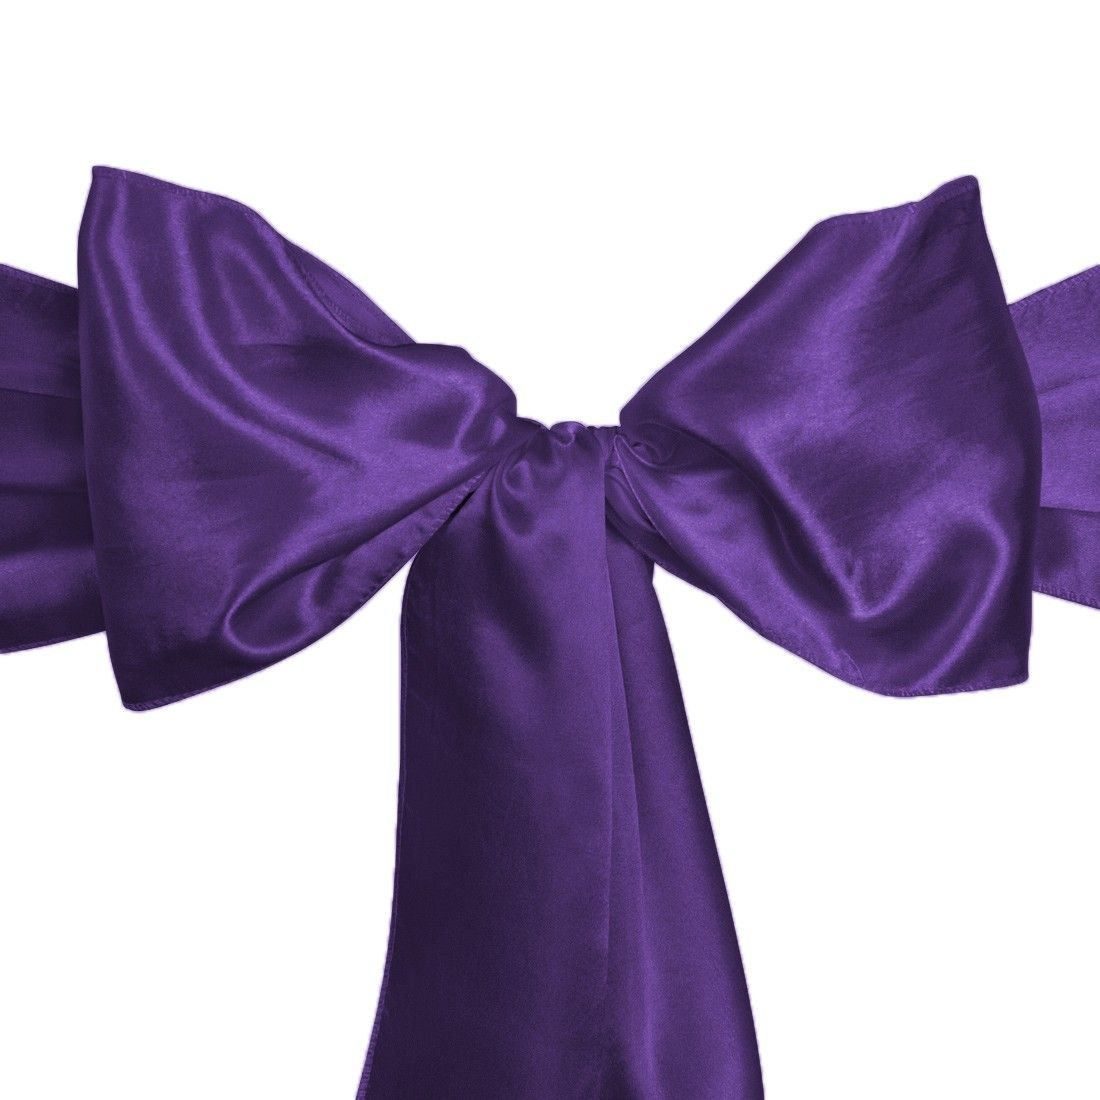 Satin Sash Purple For Events And Wedding Chair Covers